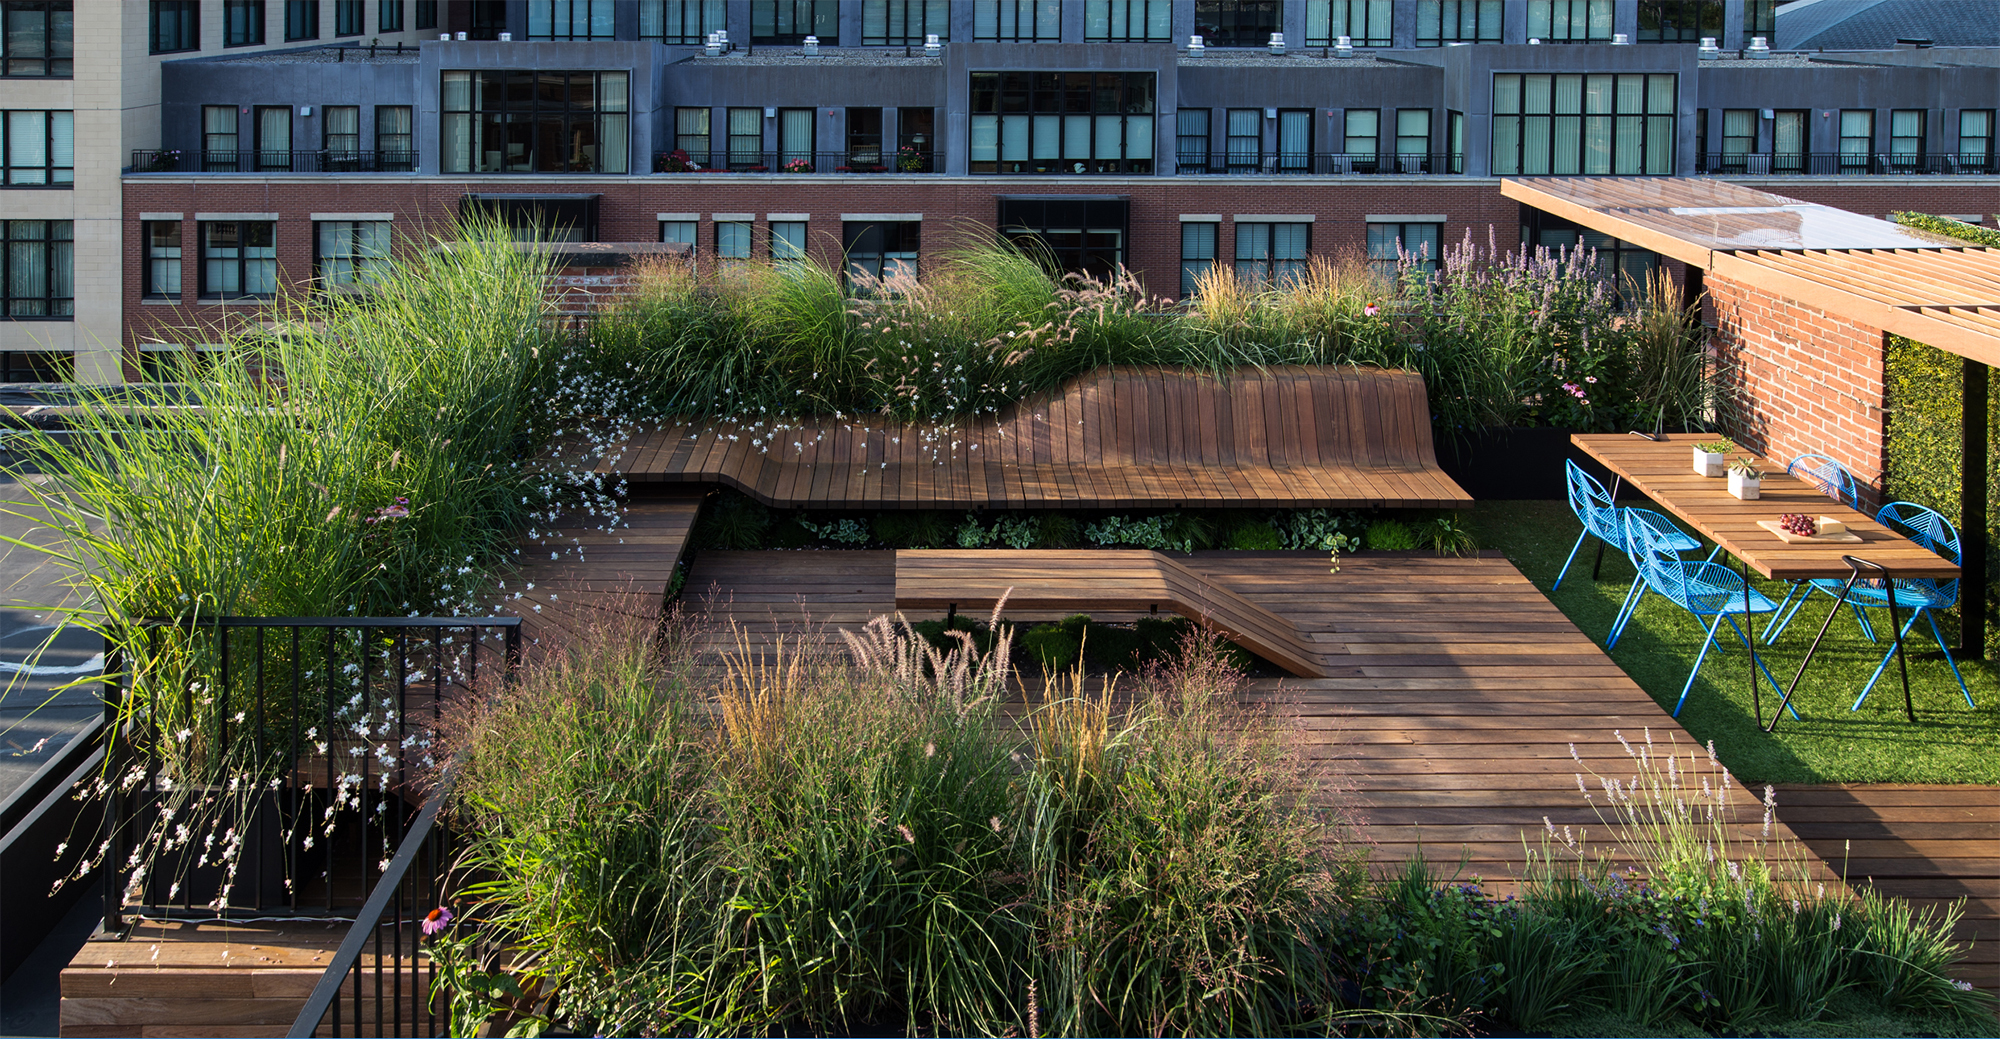 Wooden Living Roof Built With Japanese Joinery Techniques